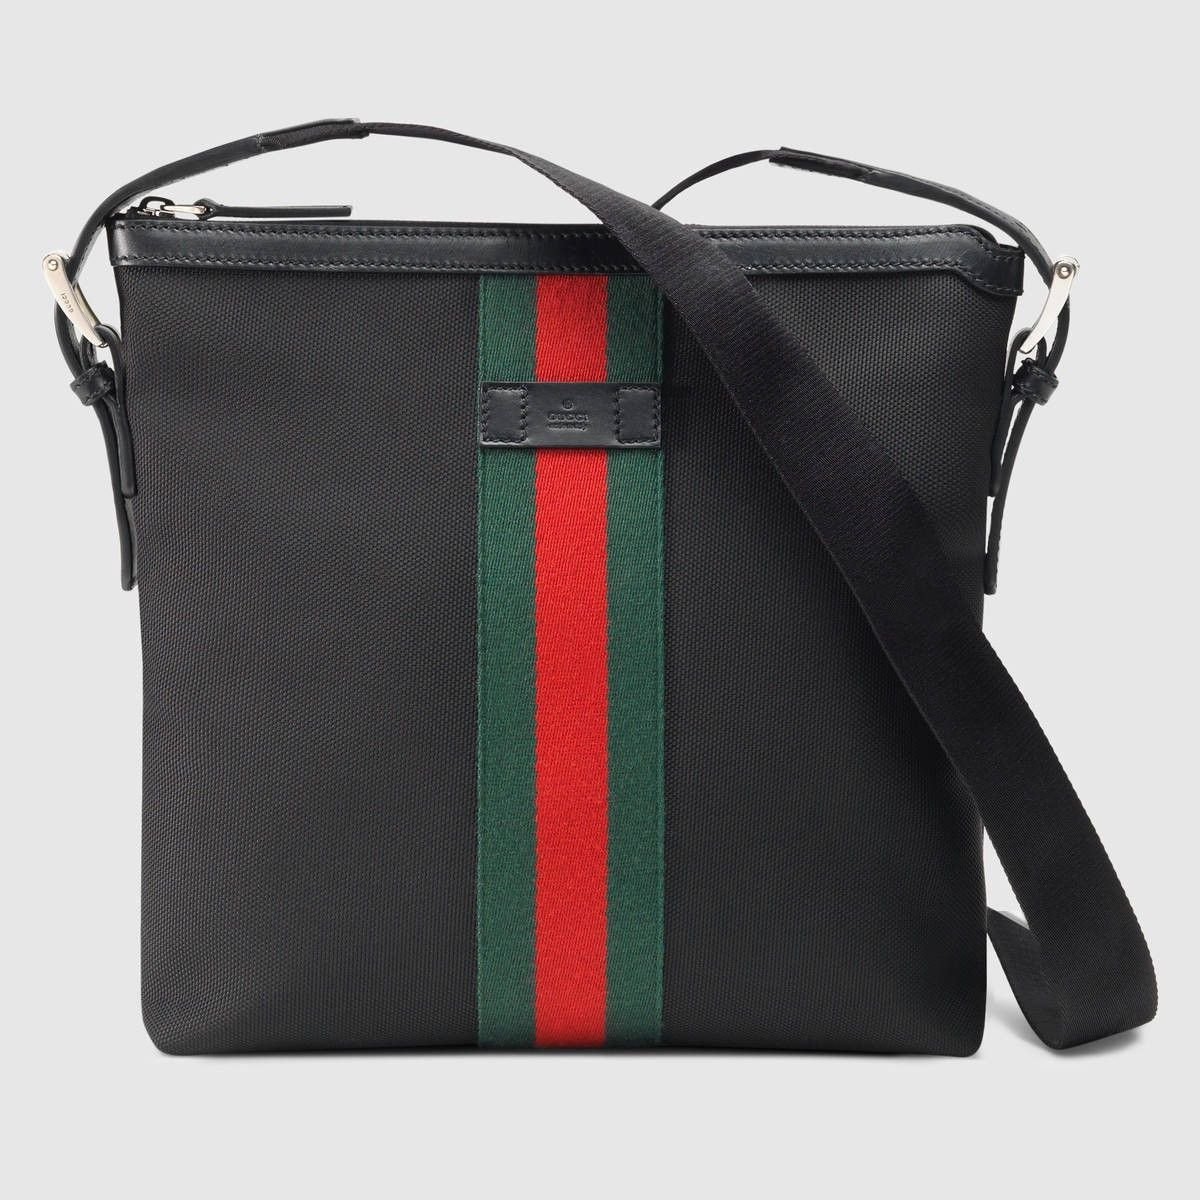 GUCCI Web Small Messenger Bag - Black.  gucci  bags  shoulder bags  leather   nylon  lining   051e32126adf5